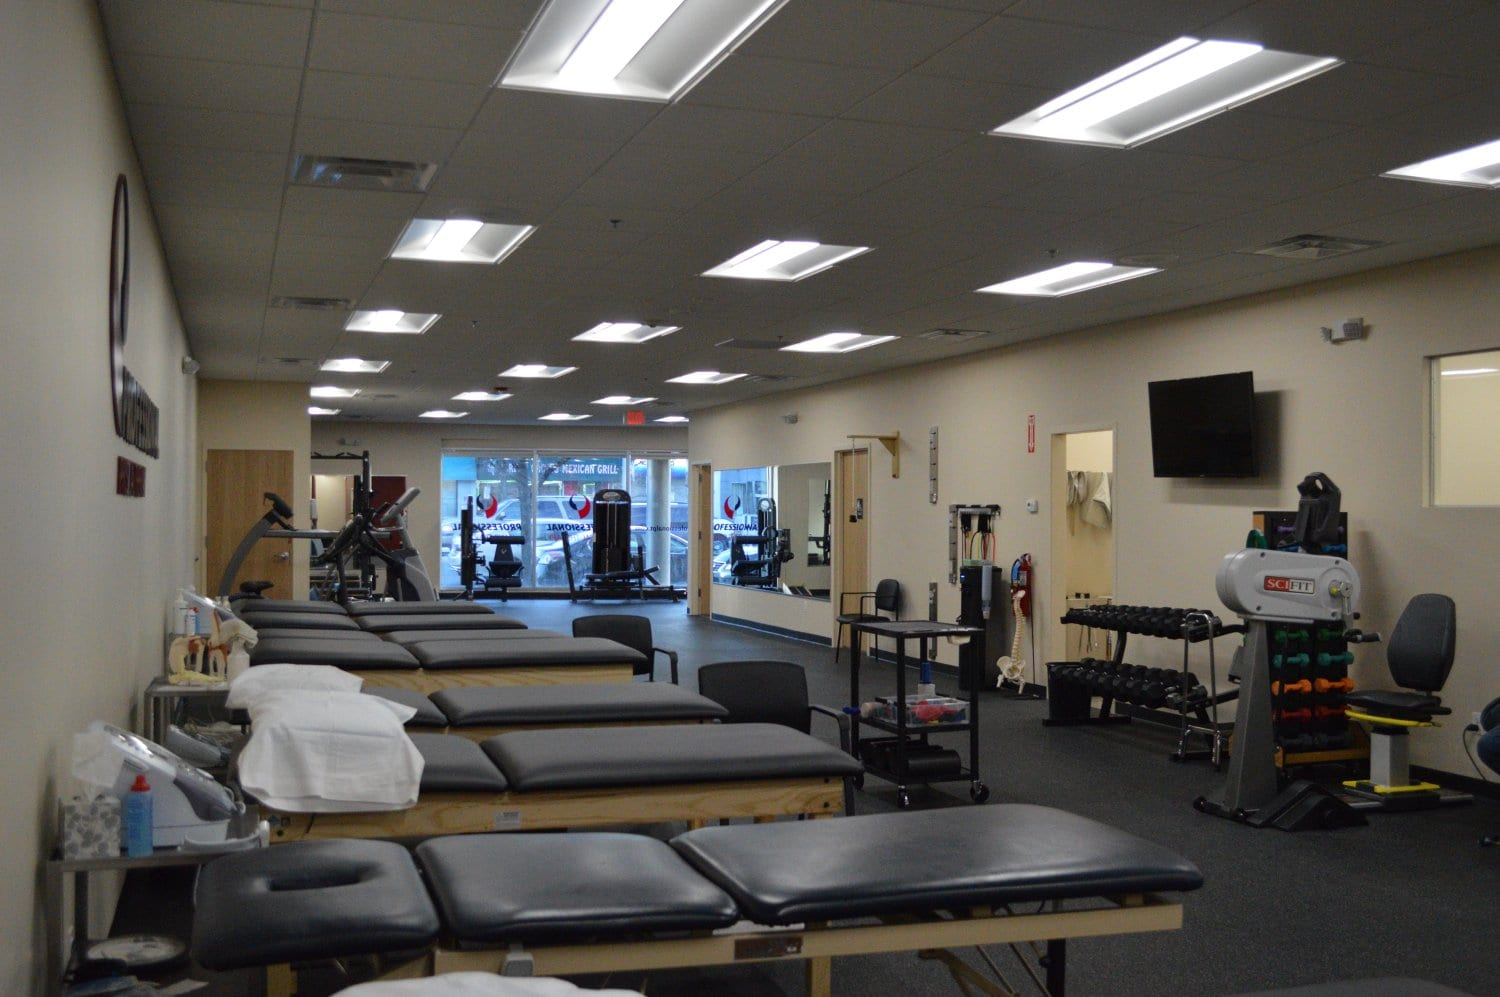 Here is a photo of the clean interior of our physical therapy clinic in Rockville Centre, New York.